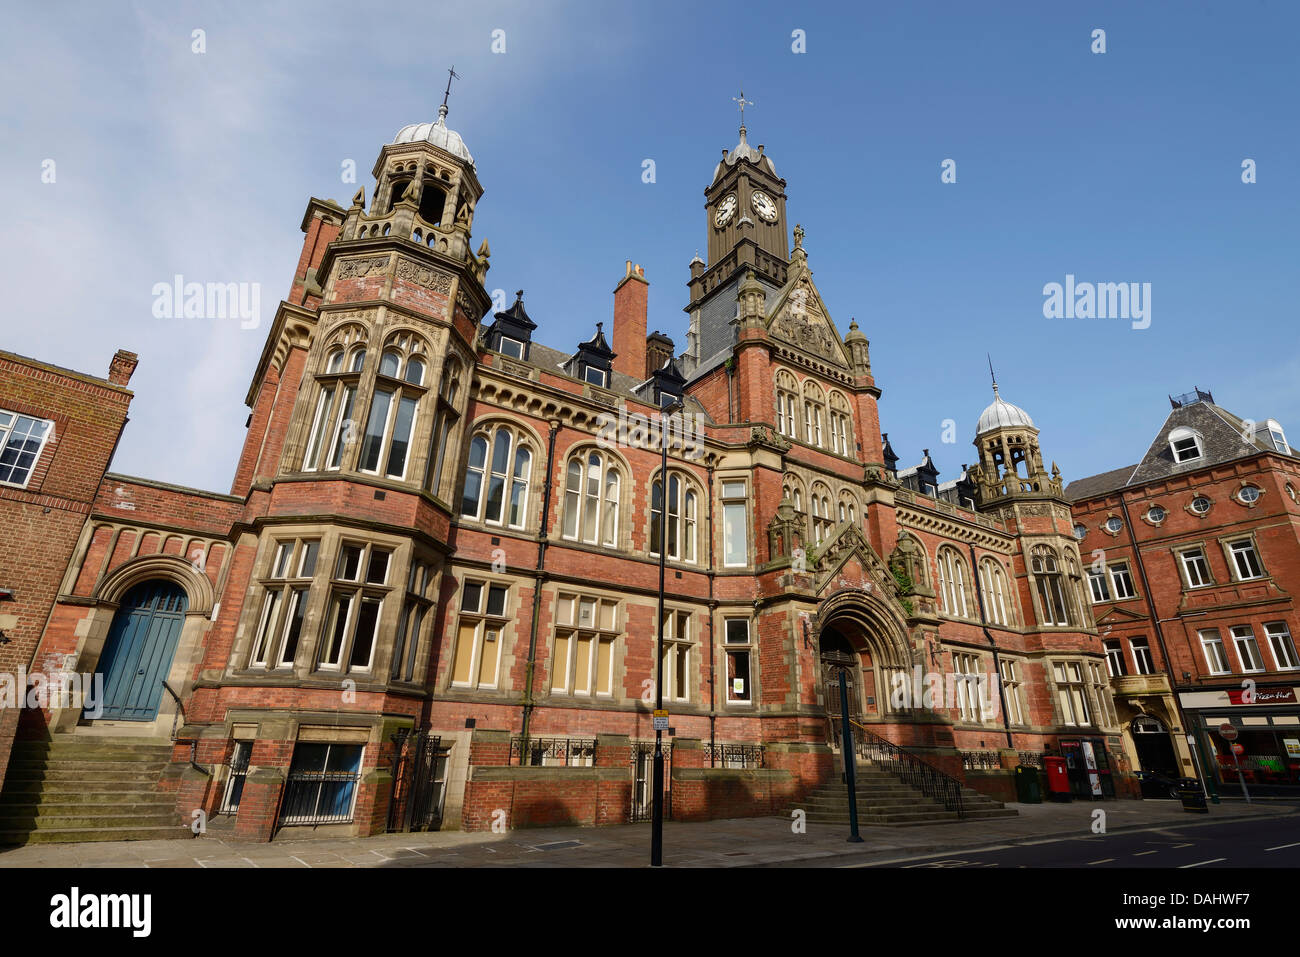 York Magistrates Court building in York city centre UK - Stock Image